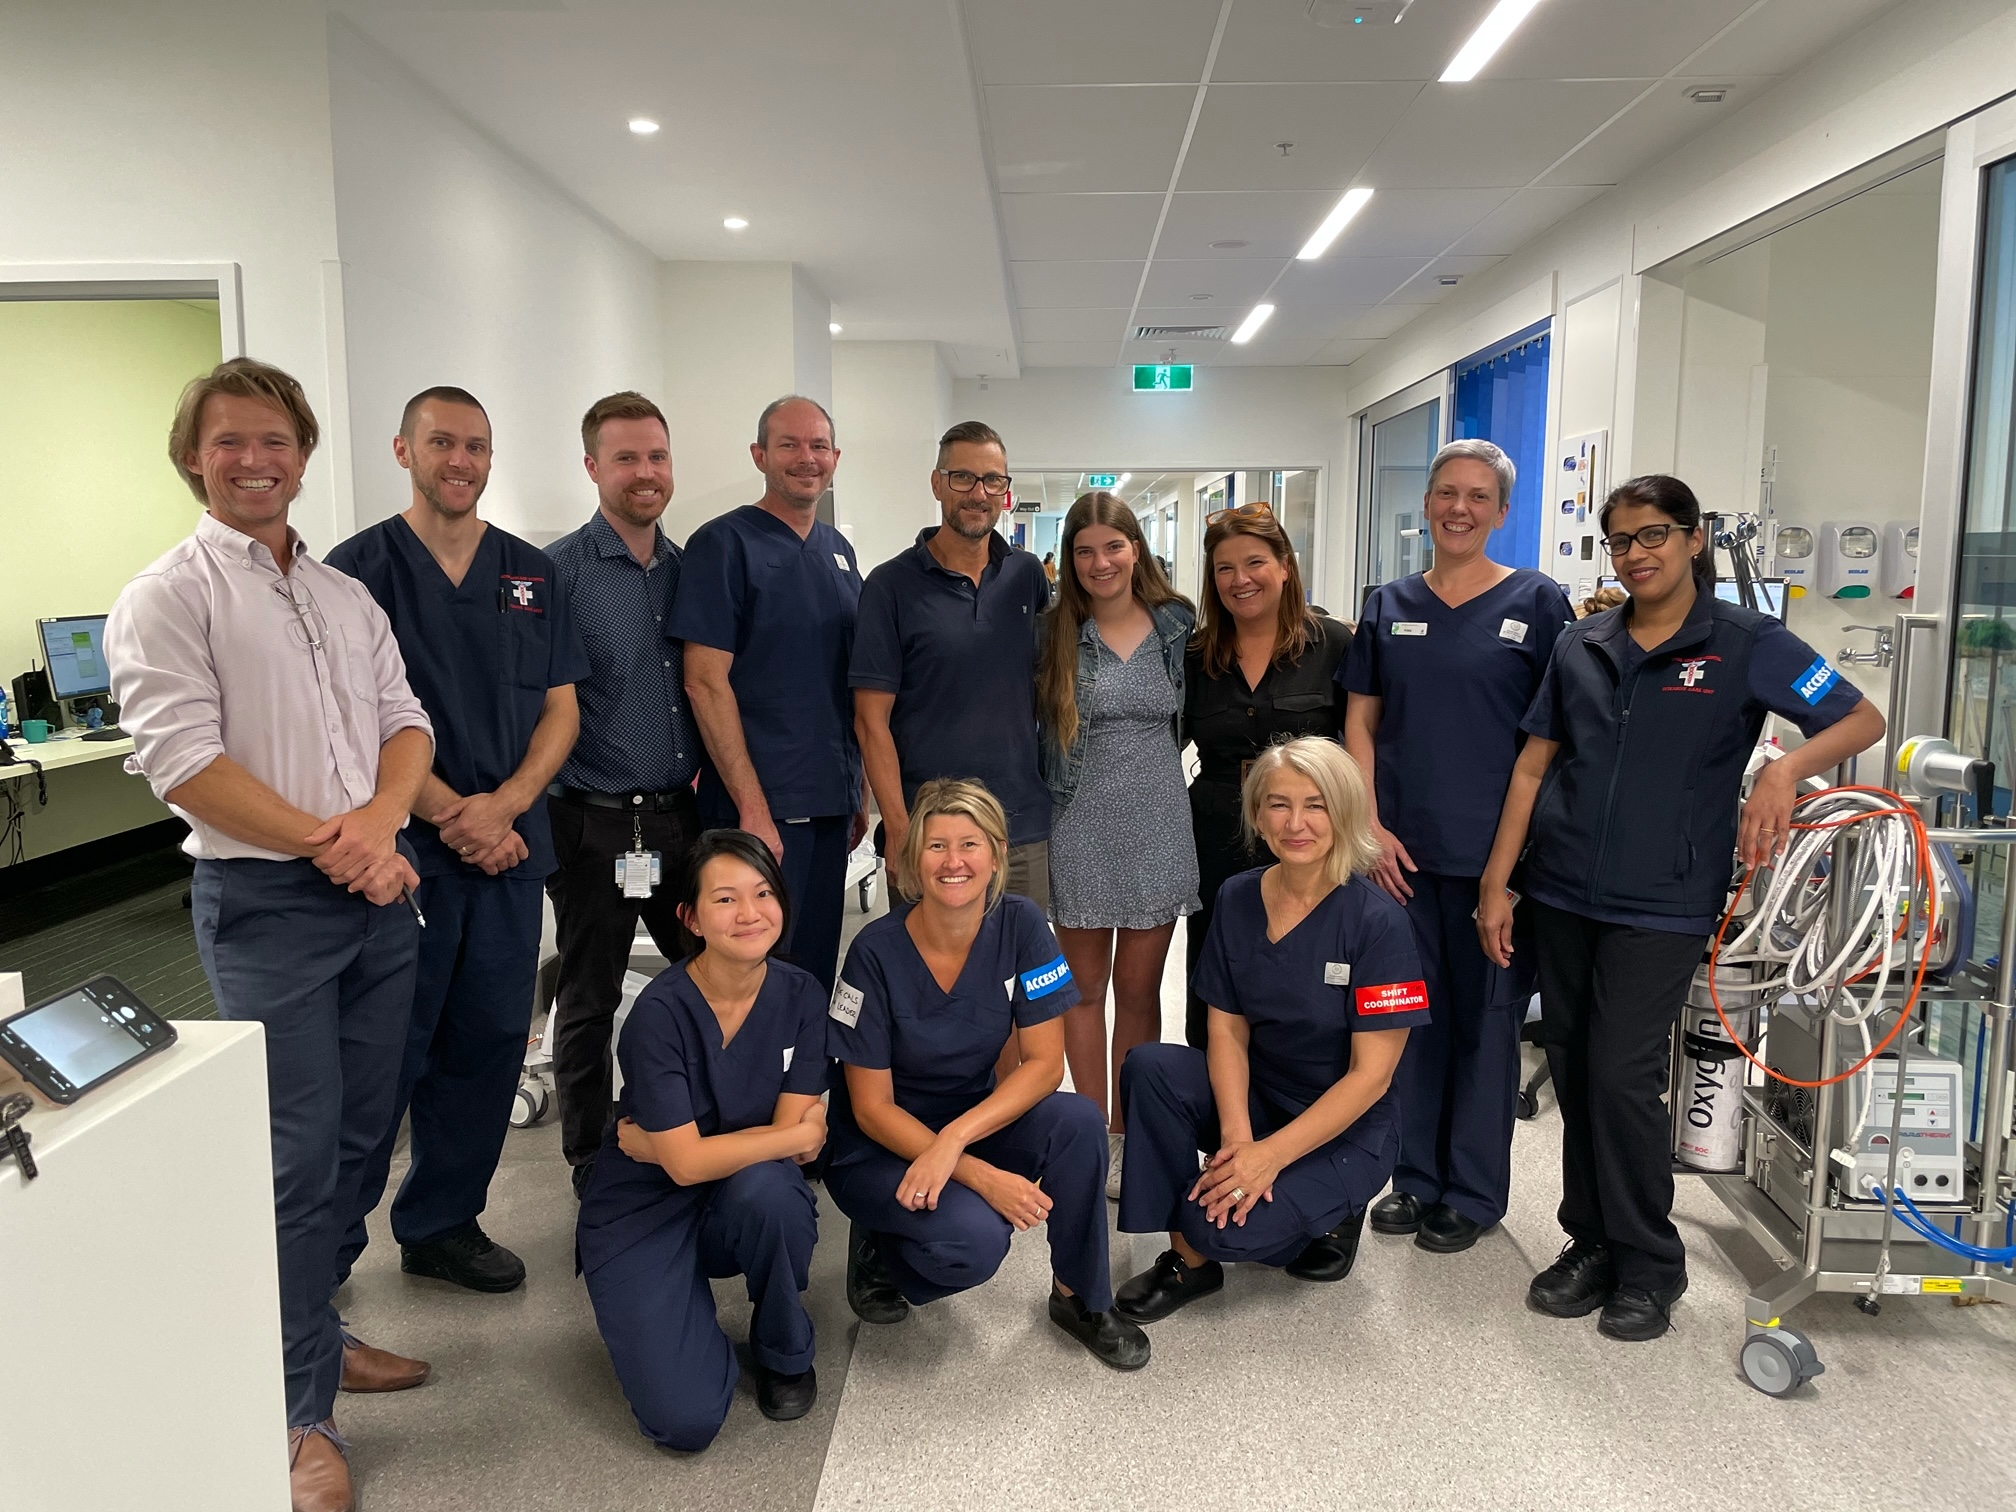 RAH ICU patient says thank you to those that saved his life